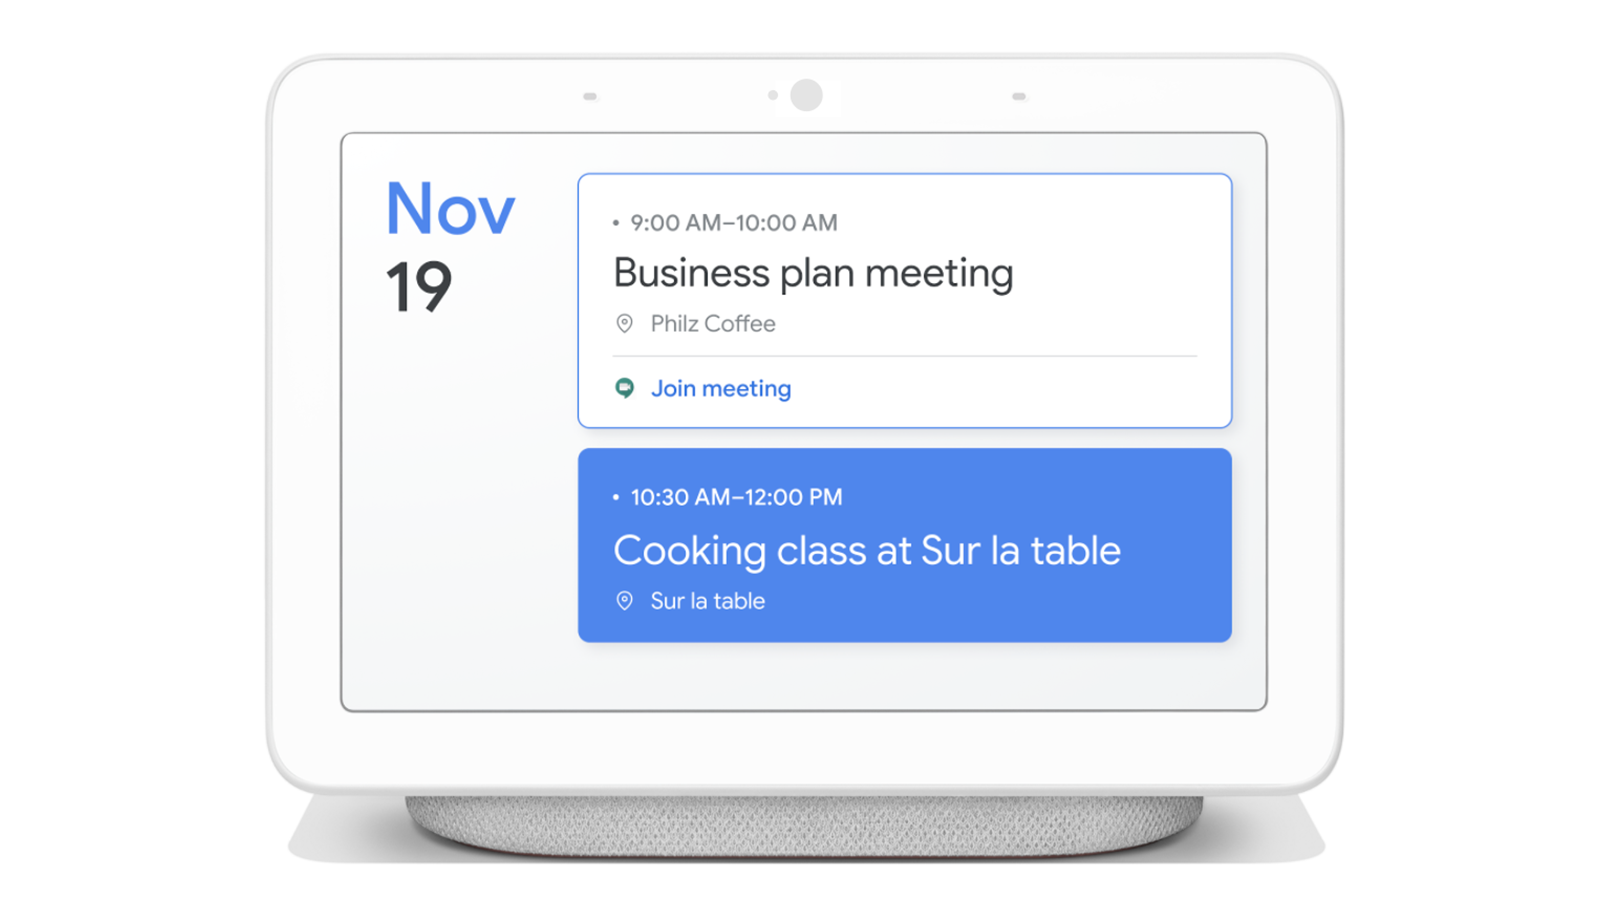 A Google Smart display showing appointments from multiple accounts on one screen.